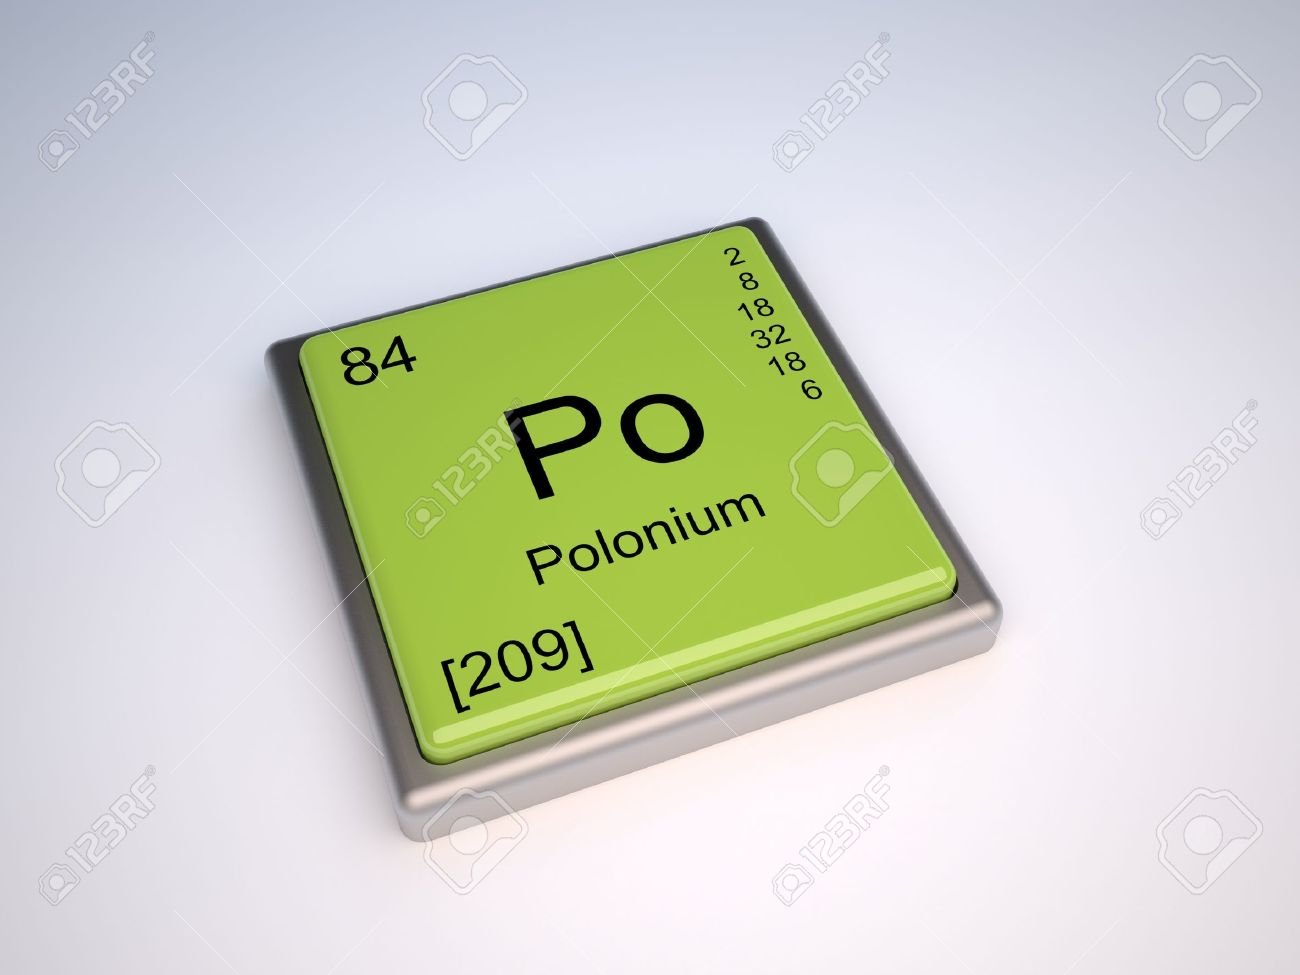 Polonium Chemical Element Of The Periodic Table With Symbol Po ...